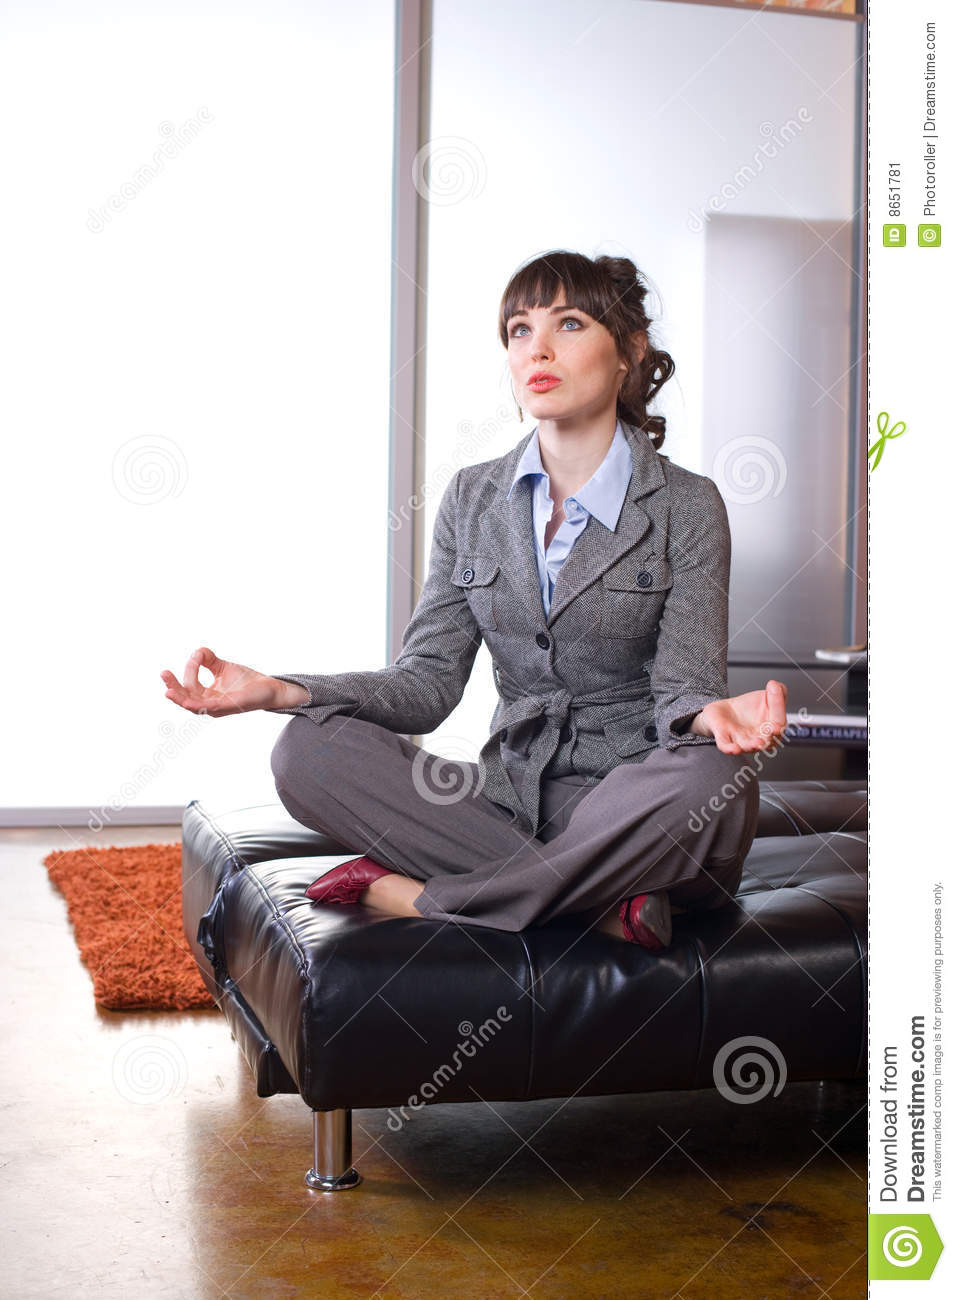 Stock Image Dreamstime Business Woman Doing Yoga In A Modern Office Stock Image